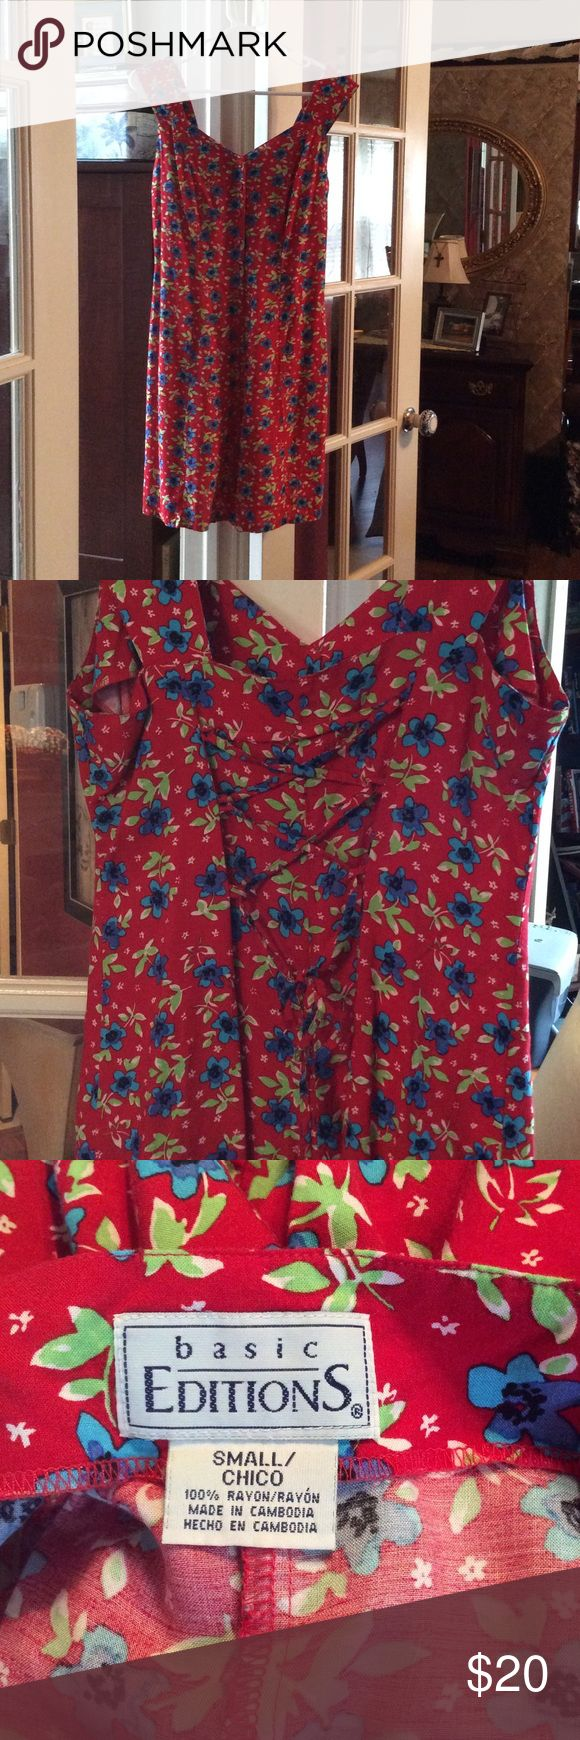 Red Romper Adorable red romper with sweet blue flowers and just a hint of white and green on the leaves. Cute lace-up on the back but on top of fabric (not see through). 100% Rayon. Perfect Summer Picnic Attire! Basic Editions Dresses